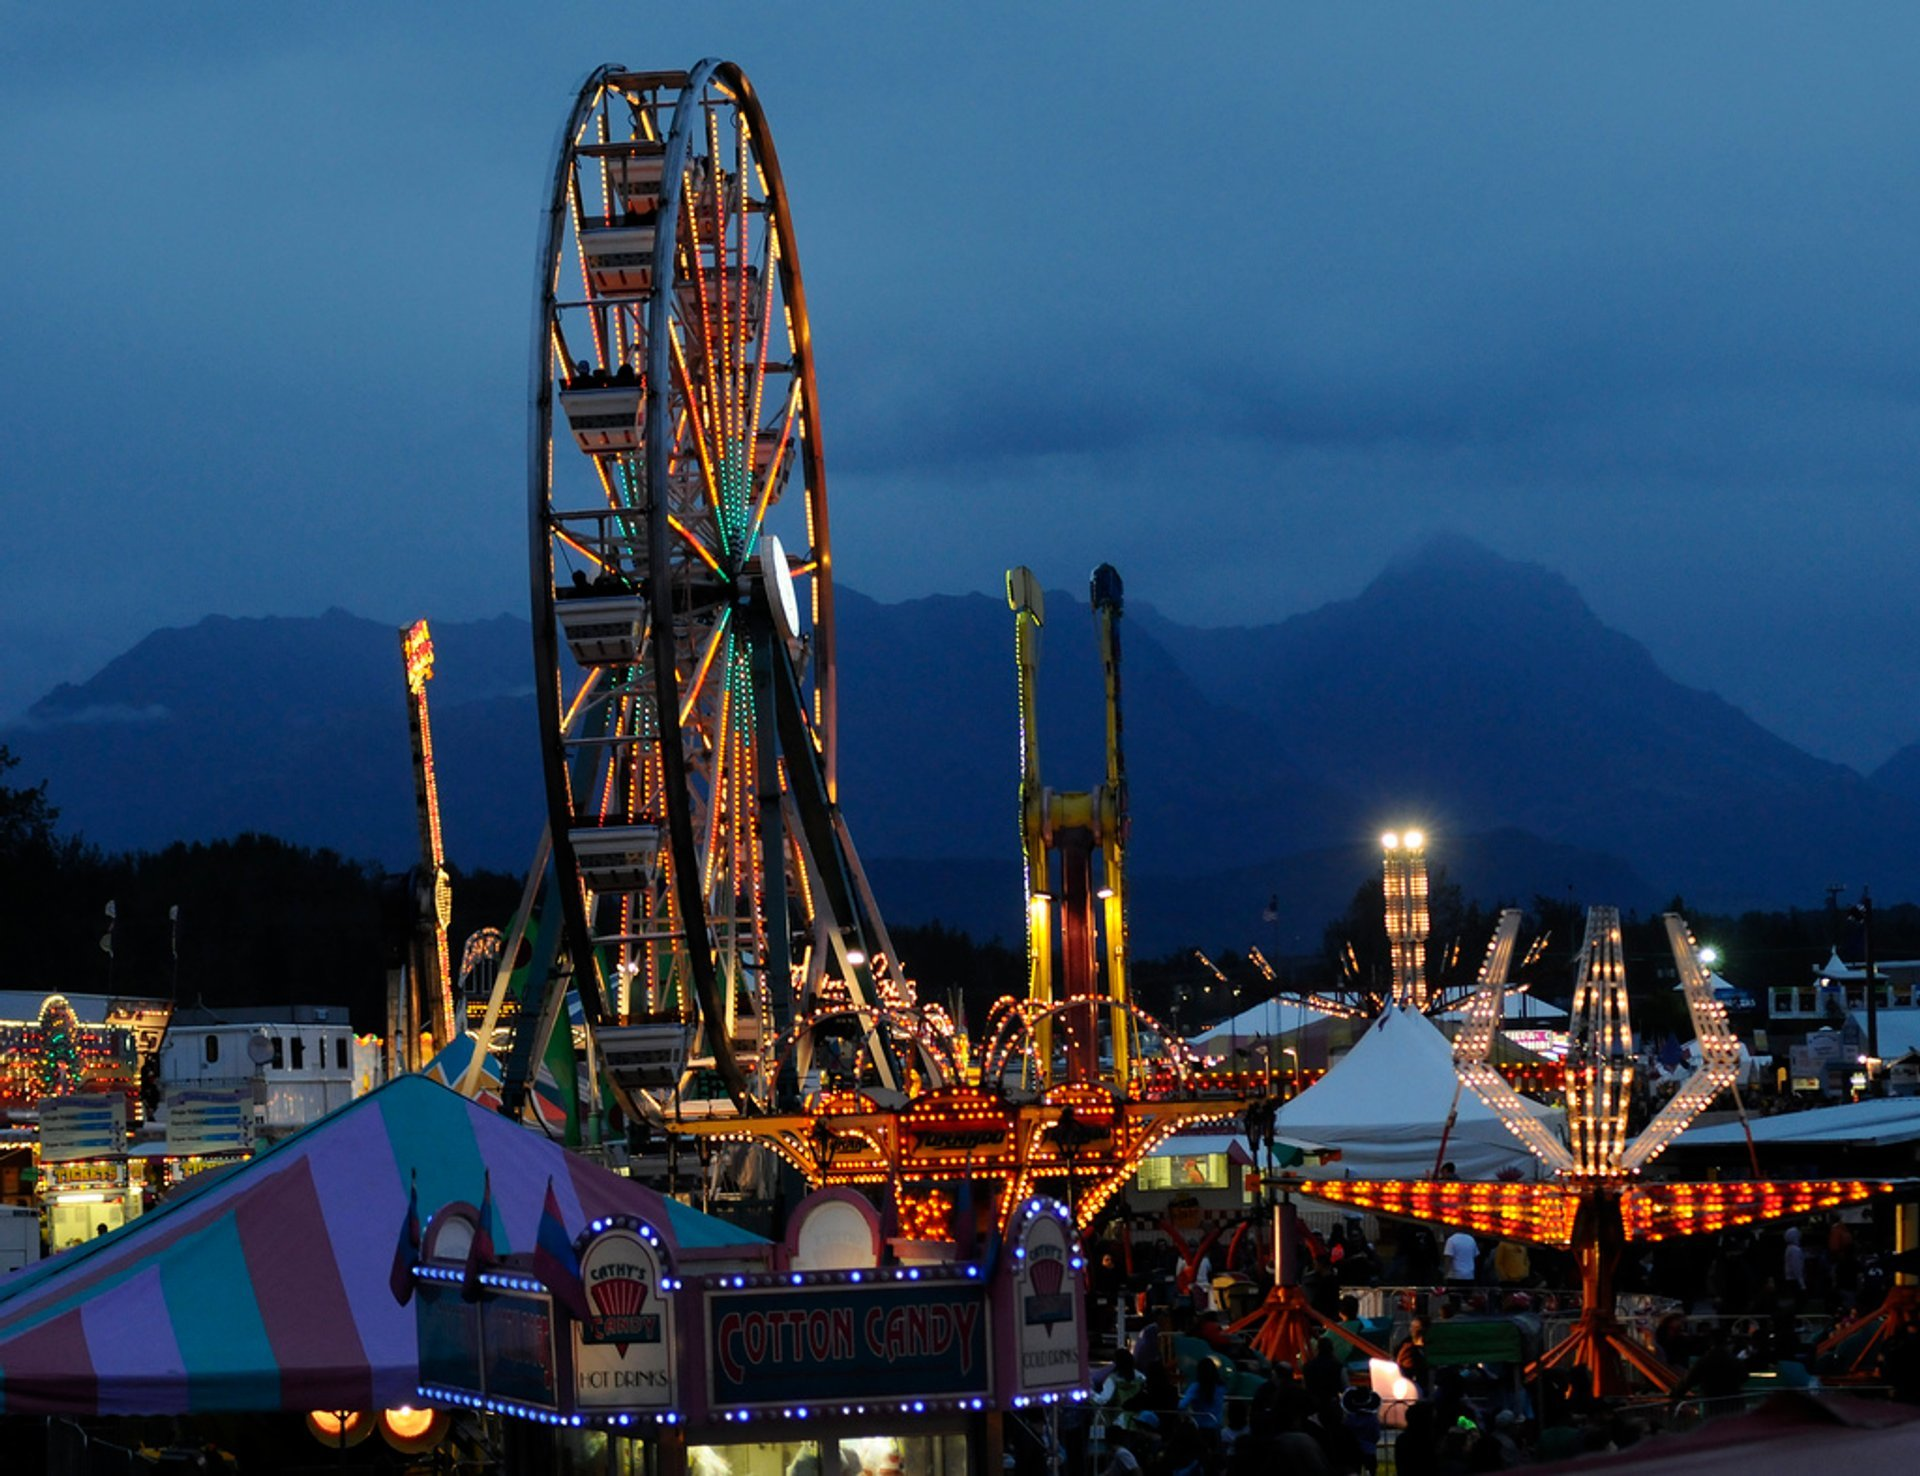 Alaska State Fair in Alaska 2020 - Best Time